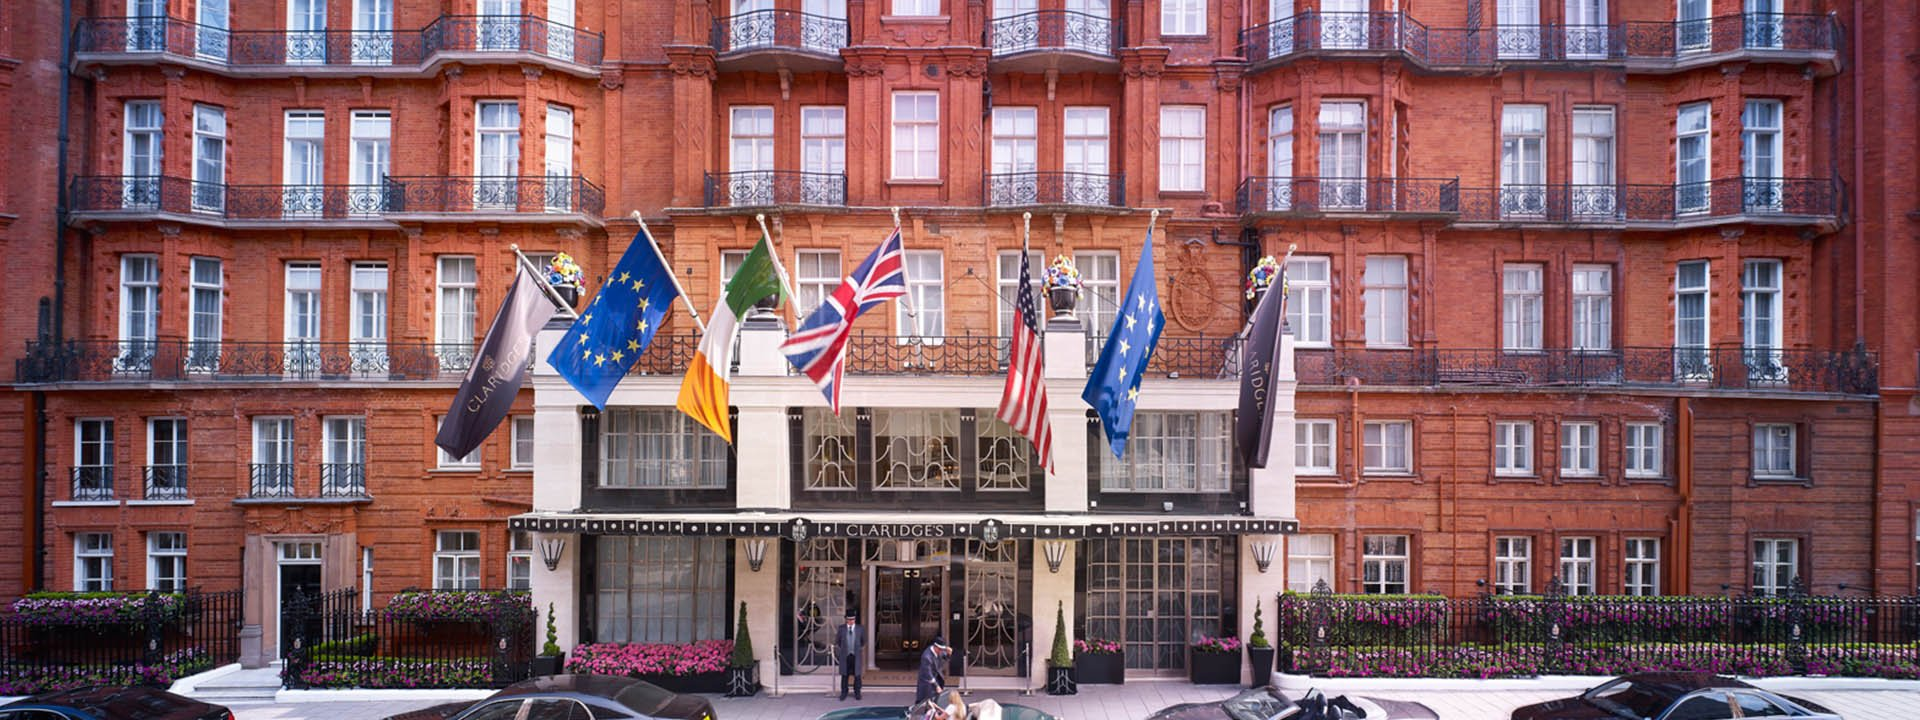 facade of clardiges hotel London